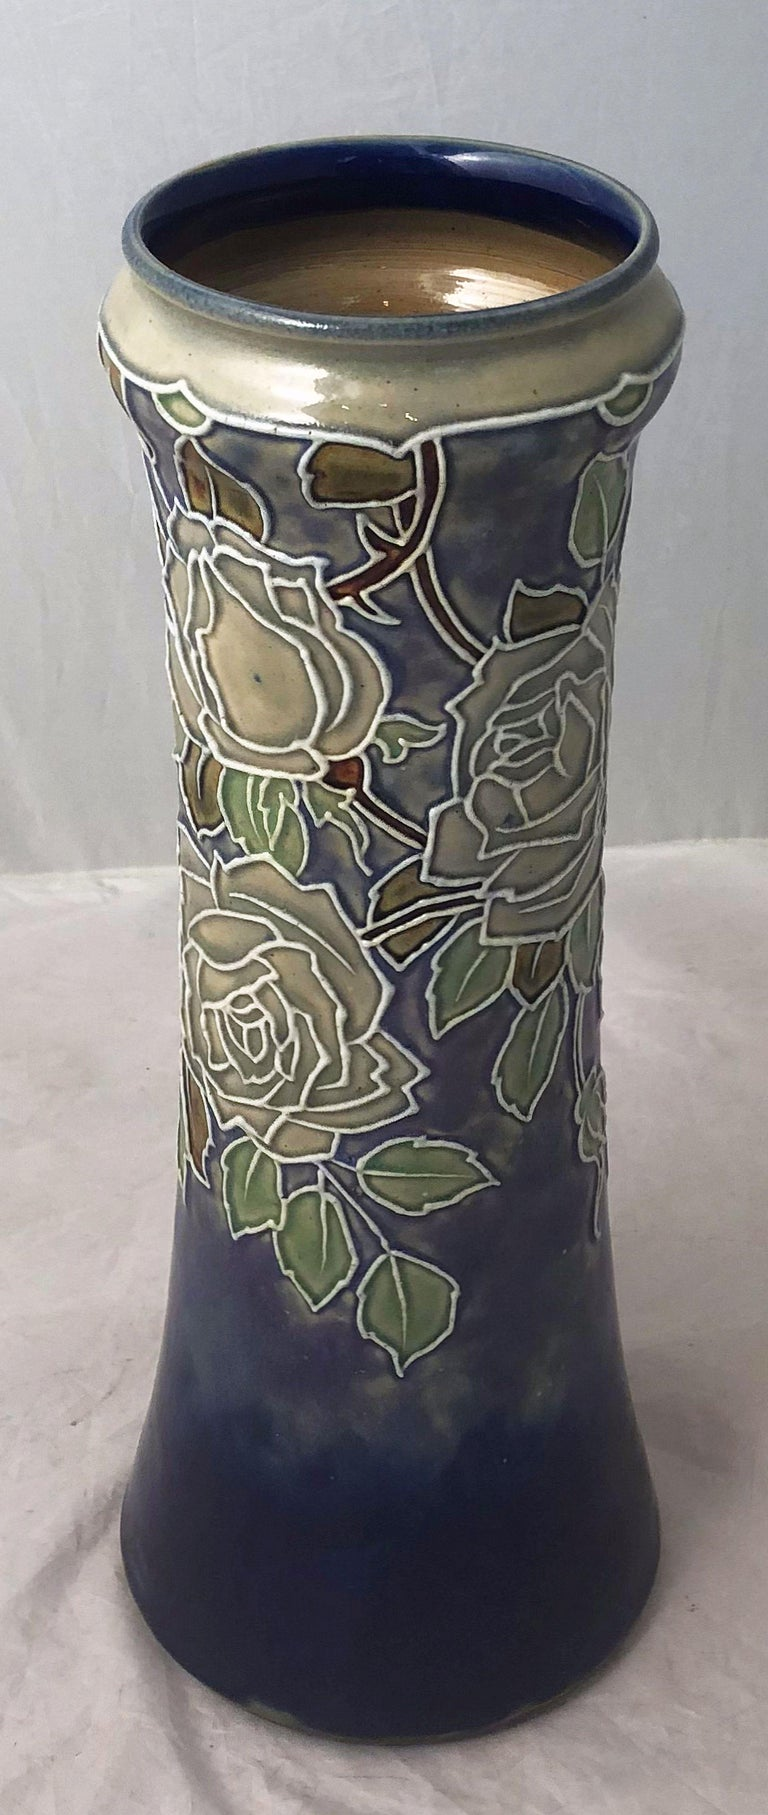 Ceramic Pair of Royal Doulton Vases from the Arts & Crafts Period, 'Priced as a Pair' For Sale